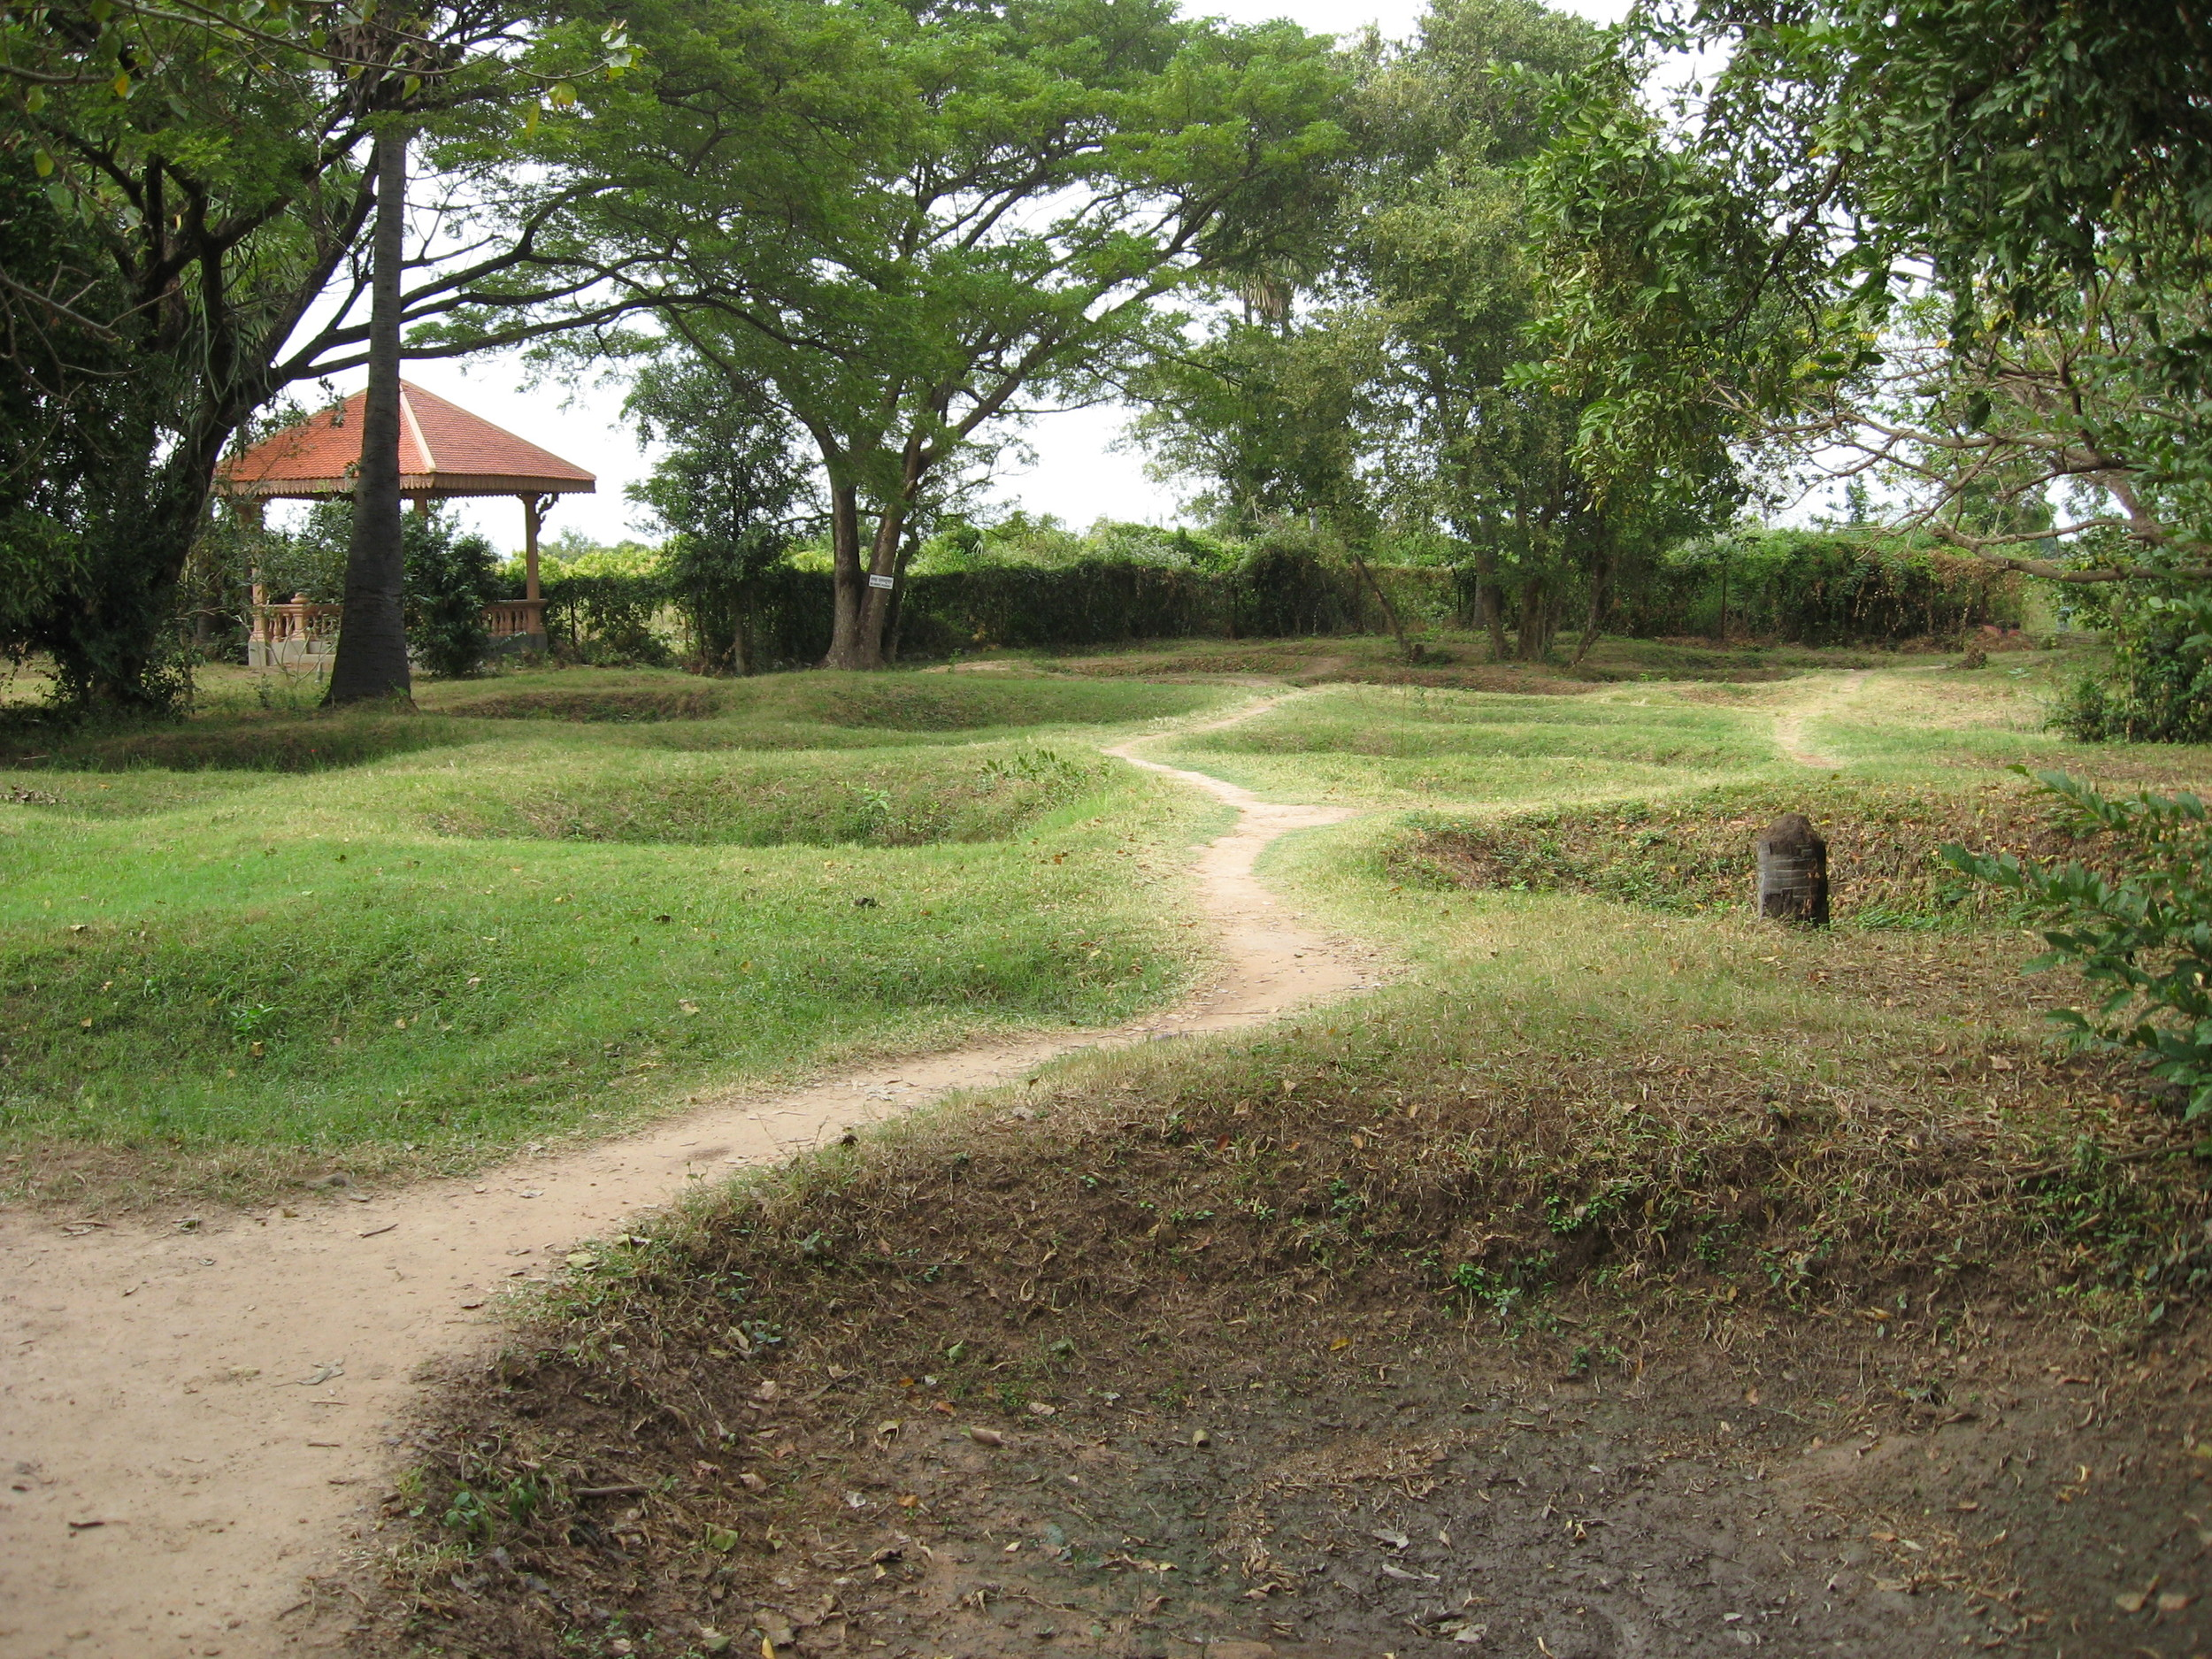 Mass graves at Choeung Ek, near Phnom Penh, Cambodia. Photo: Mary Marcussen, 2009.